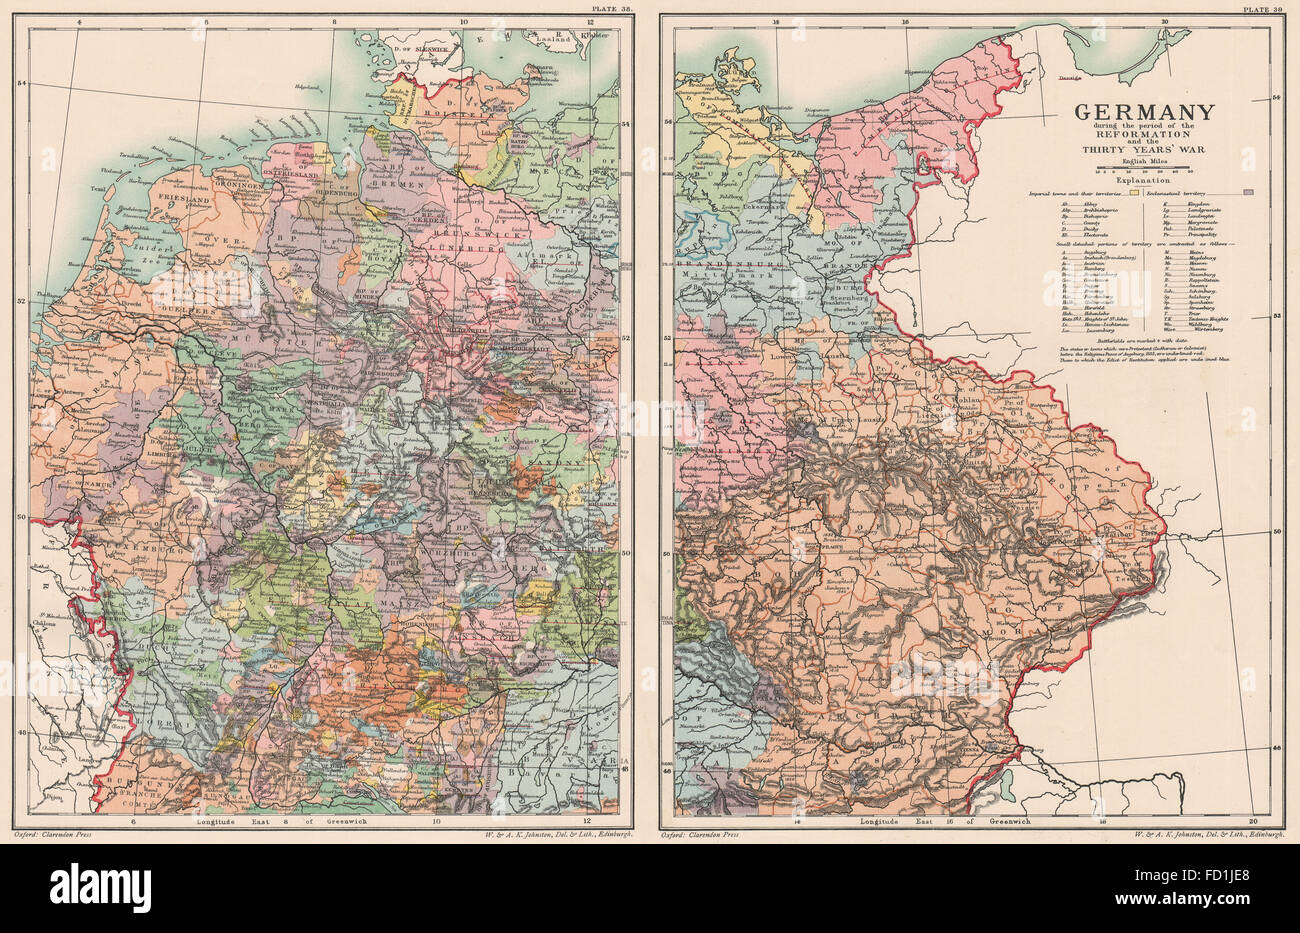 Thirty Years War Stock Photos Thirty Years War Stock Images Alamy - Map germany thirty years war